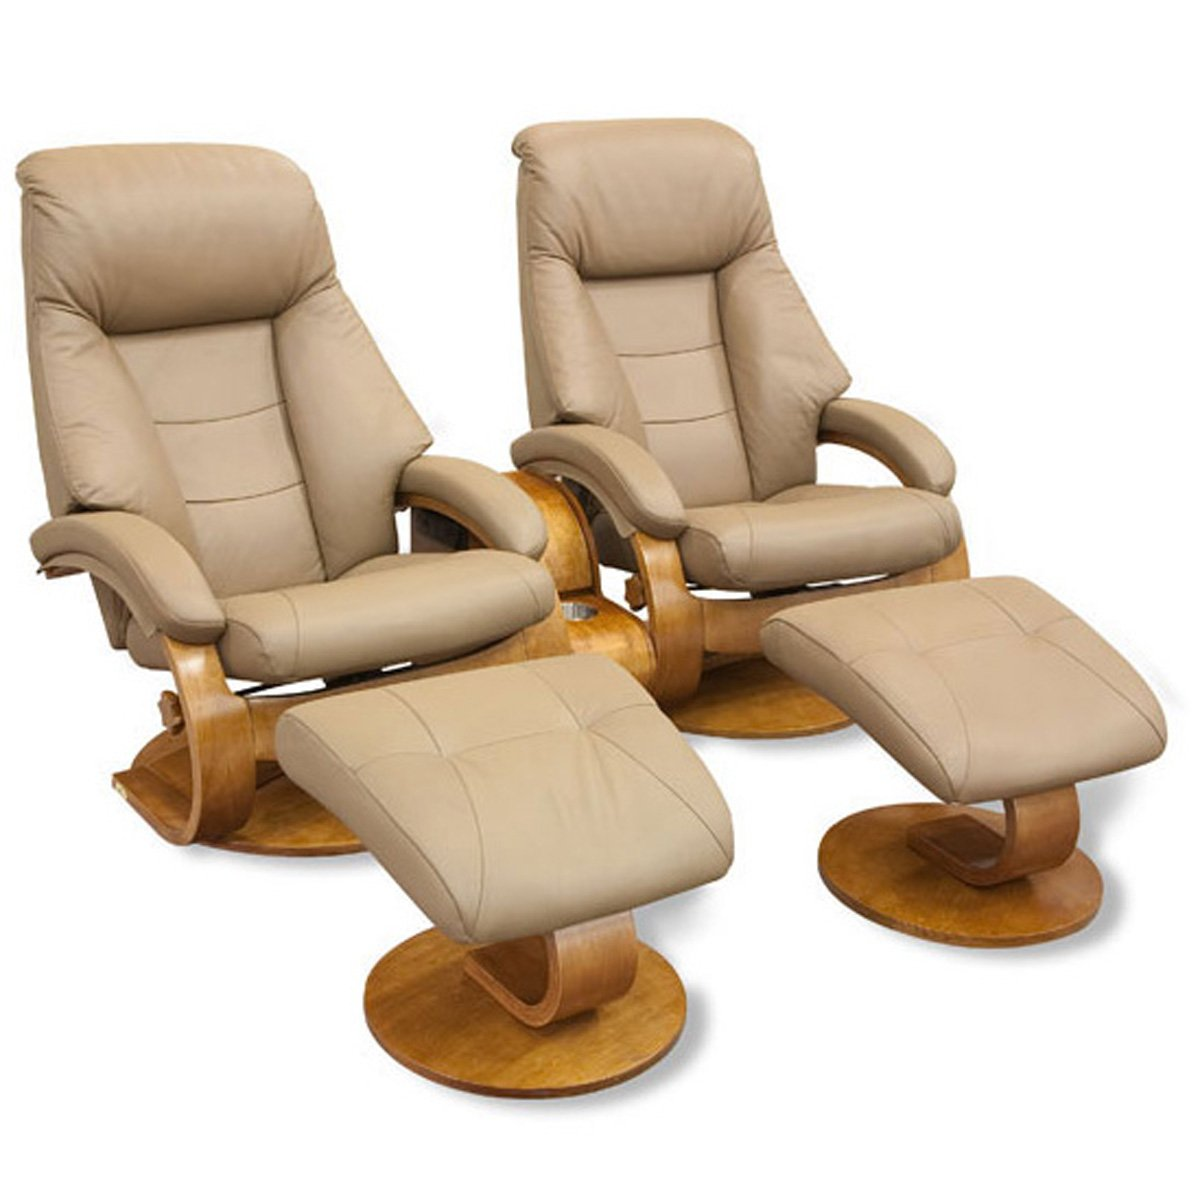 You Can Adjust The Headrest According To Your Need And Easily Swing Both  The Sides. Itu0027s Best Suited For An Office Atmosphere Where You Would Like  To Spend ...